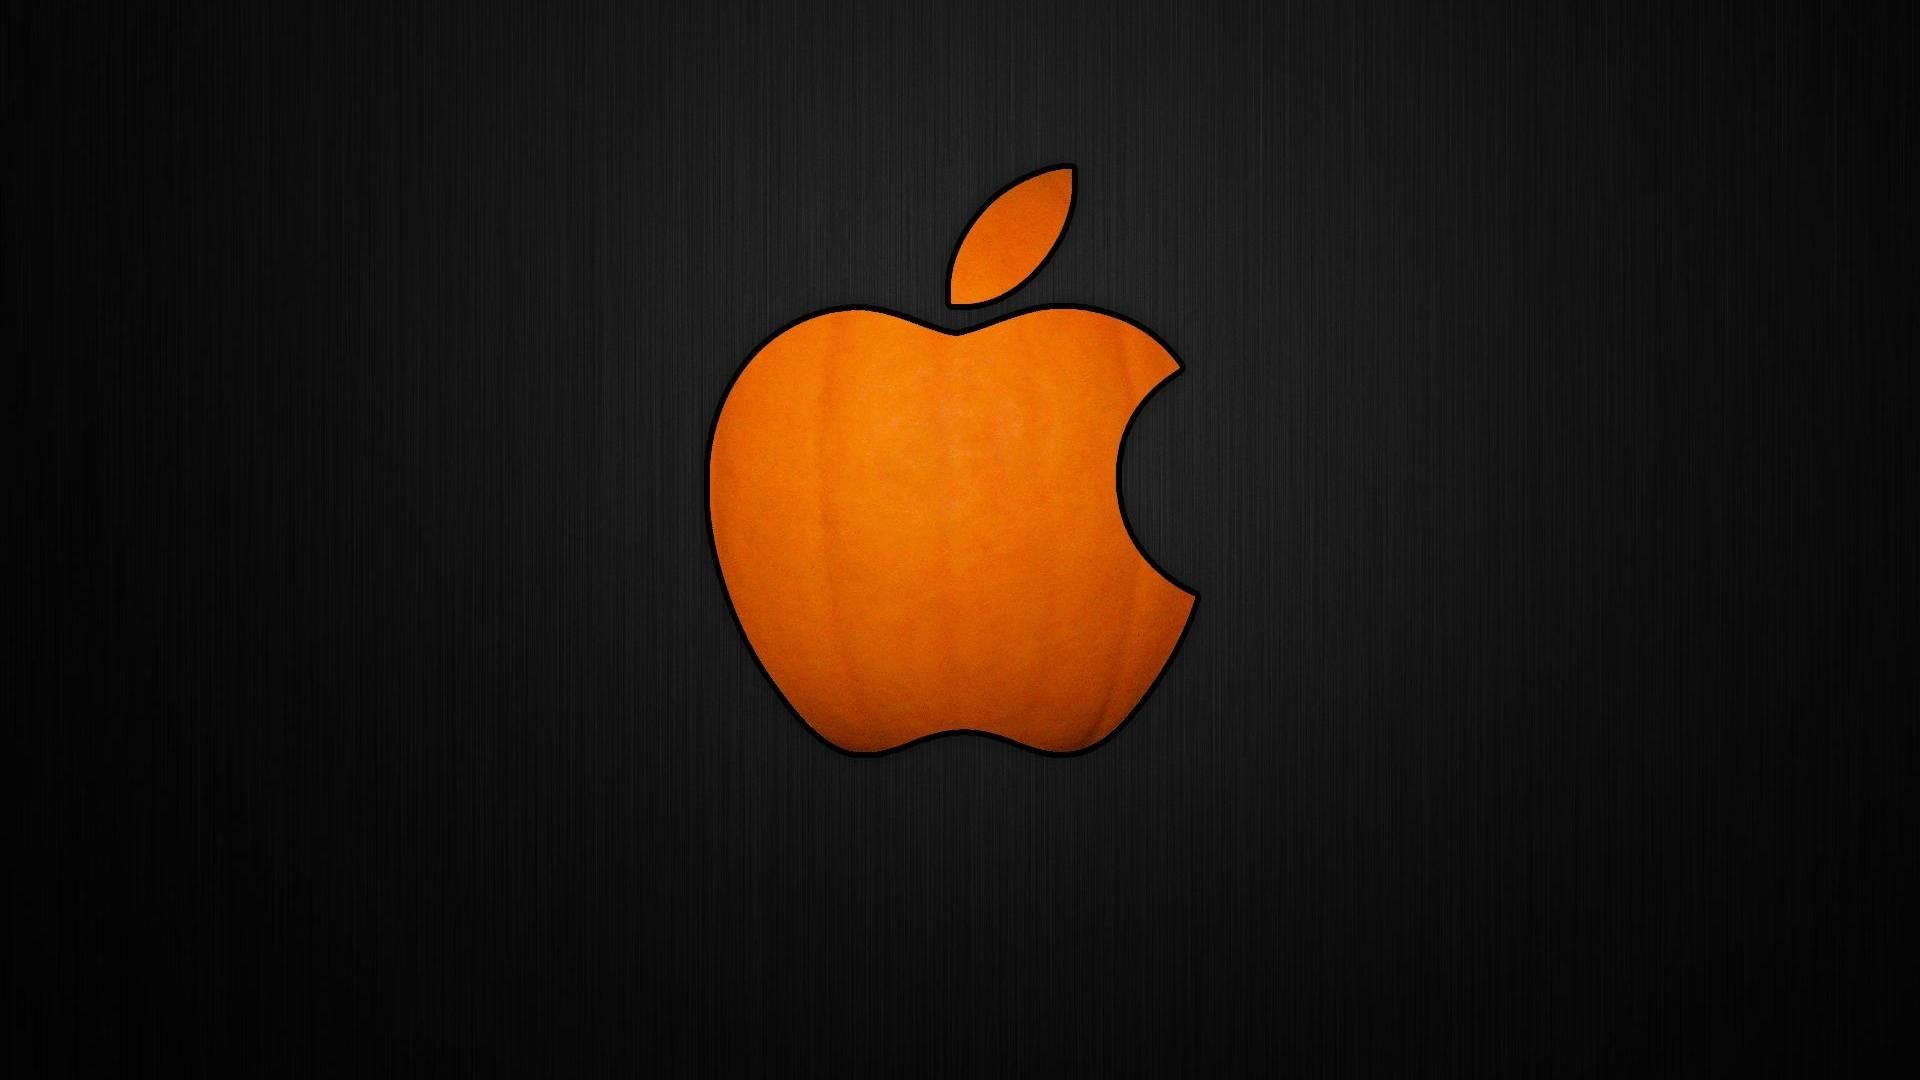 Download Wallpaper Macbook Halloween - 83cfc0abaf0c83e68737e8fe564a2478  Trends_67726.jpg